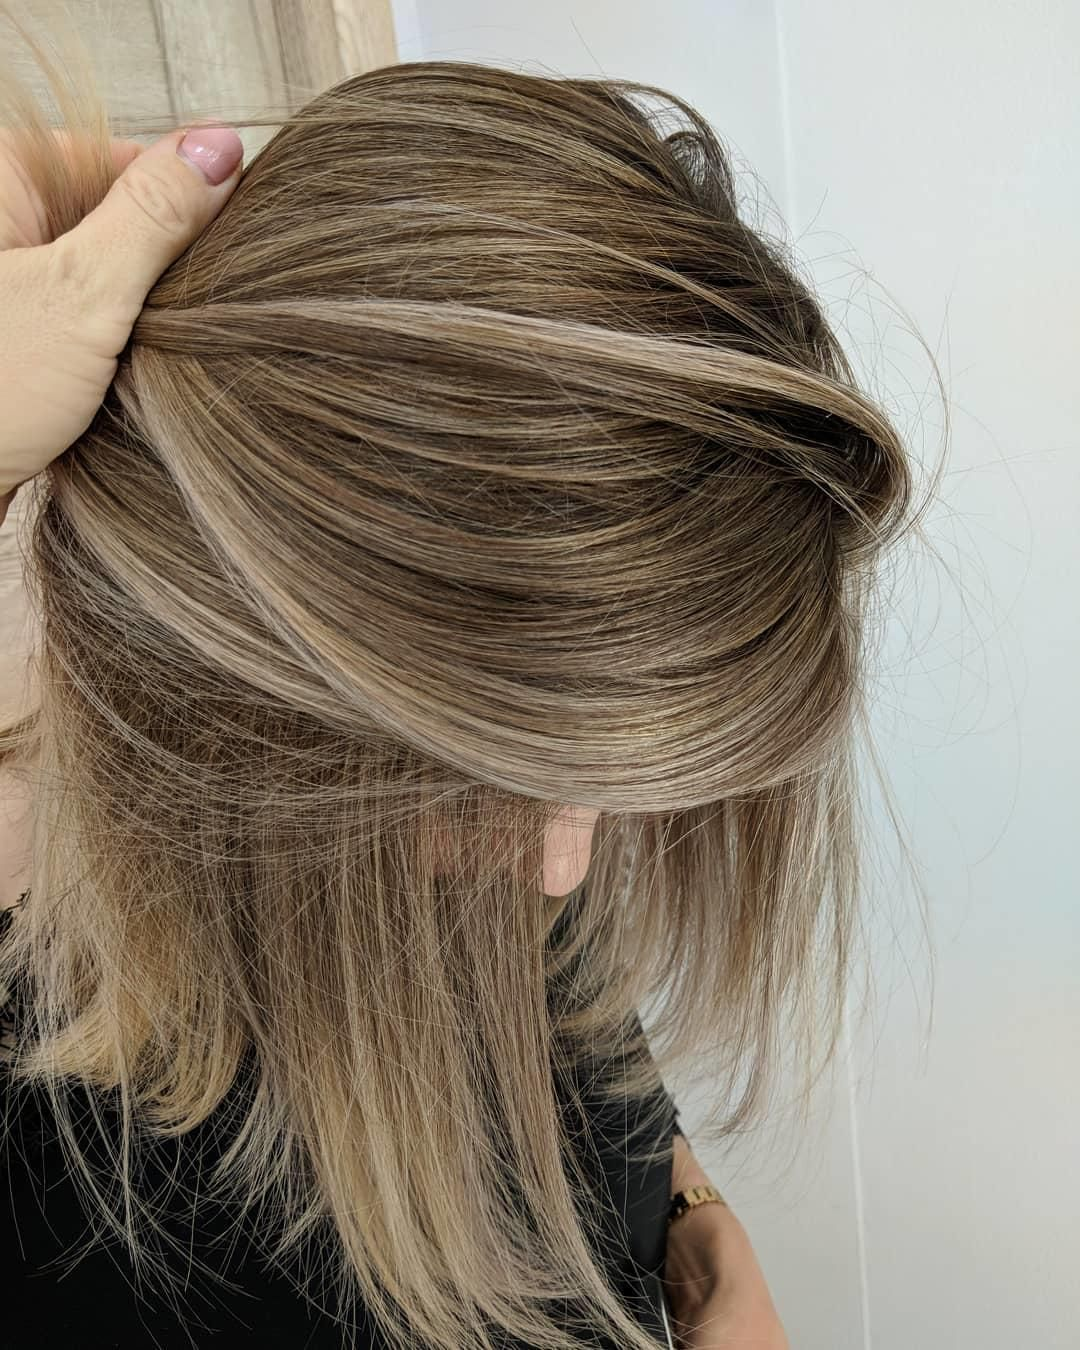 50 Best Hair Color Ideas Trends To Look Out For In 2021 According To Stylists Hair Styles Popular Hair Color Braided Hairstyles For Wedding